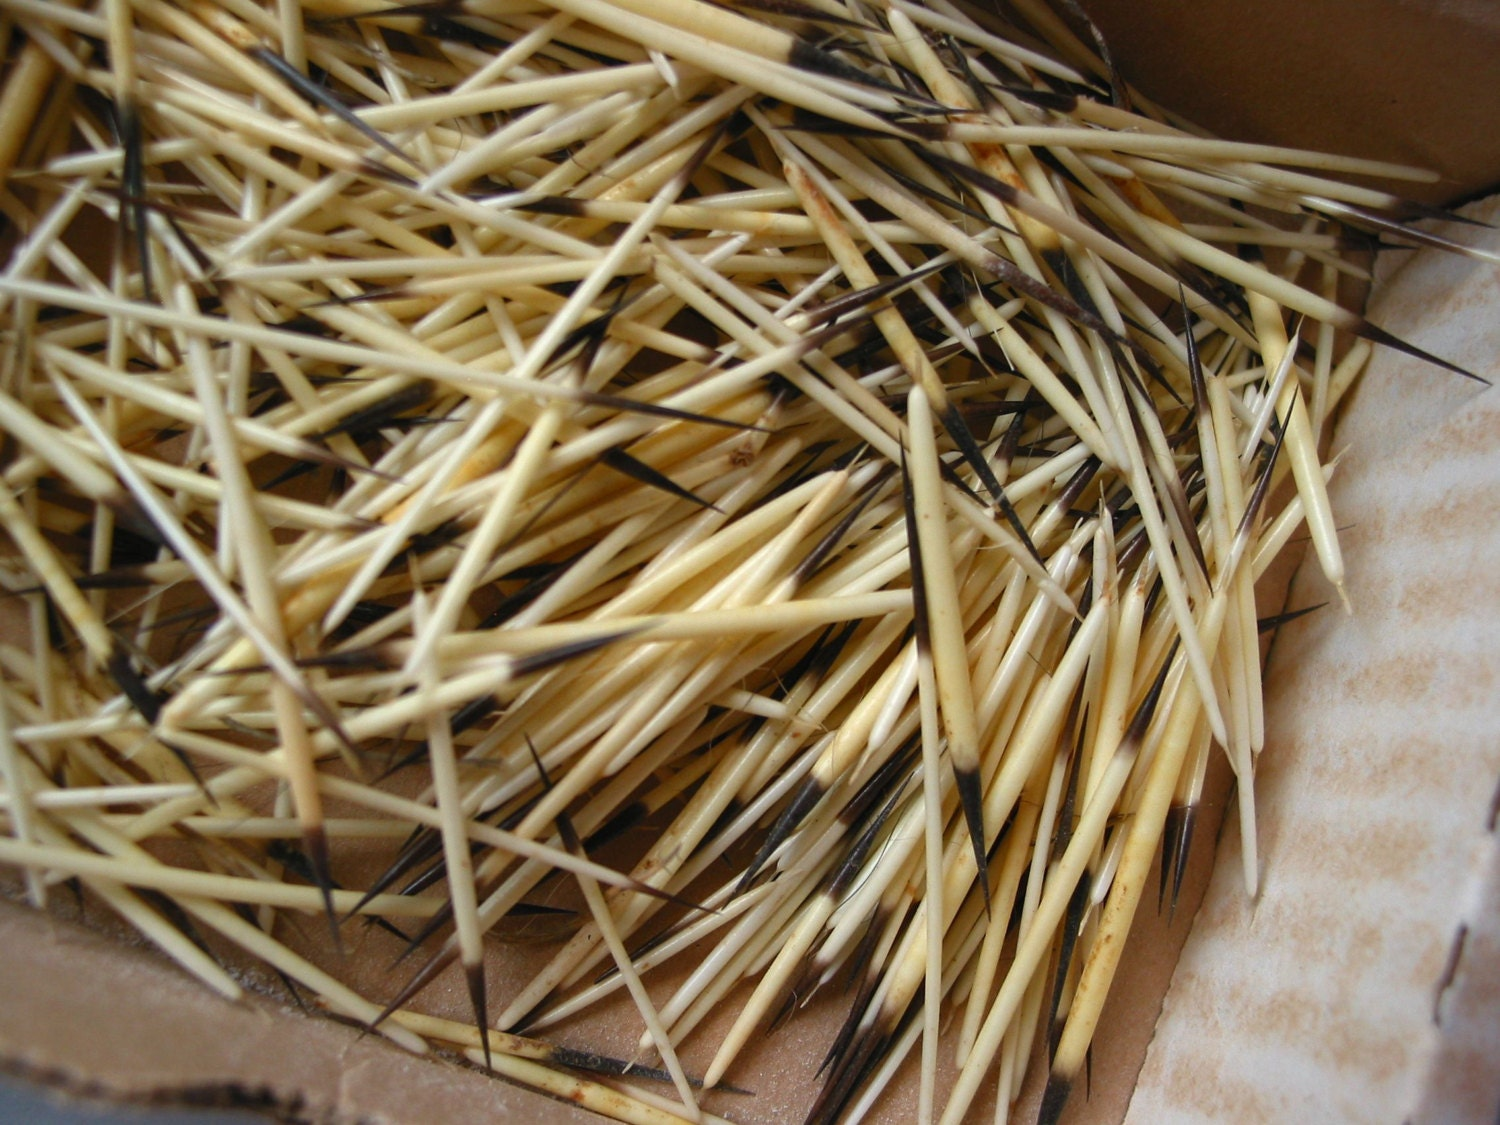 Porcupine quills authentic Lot Box for arts and crafts